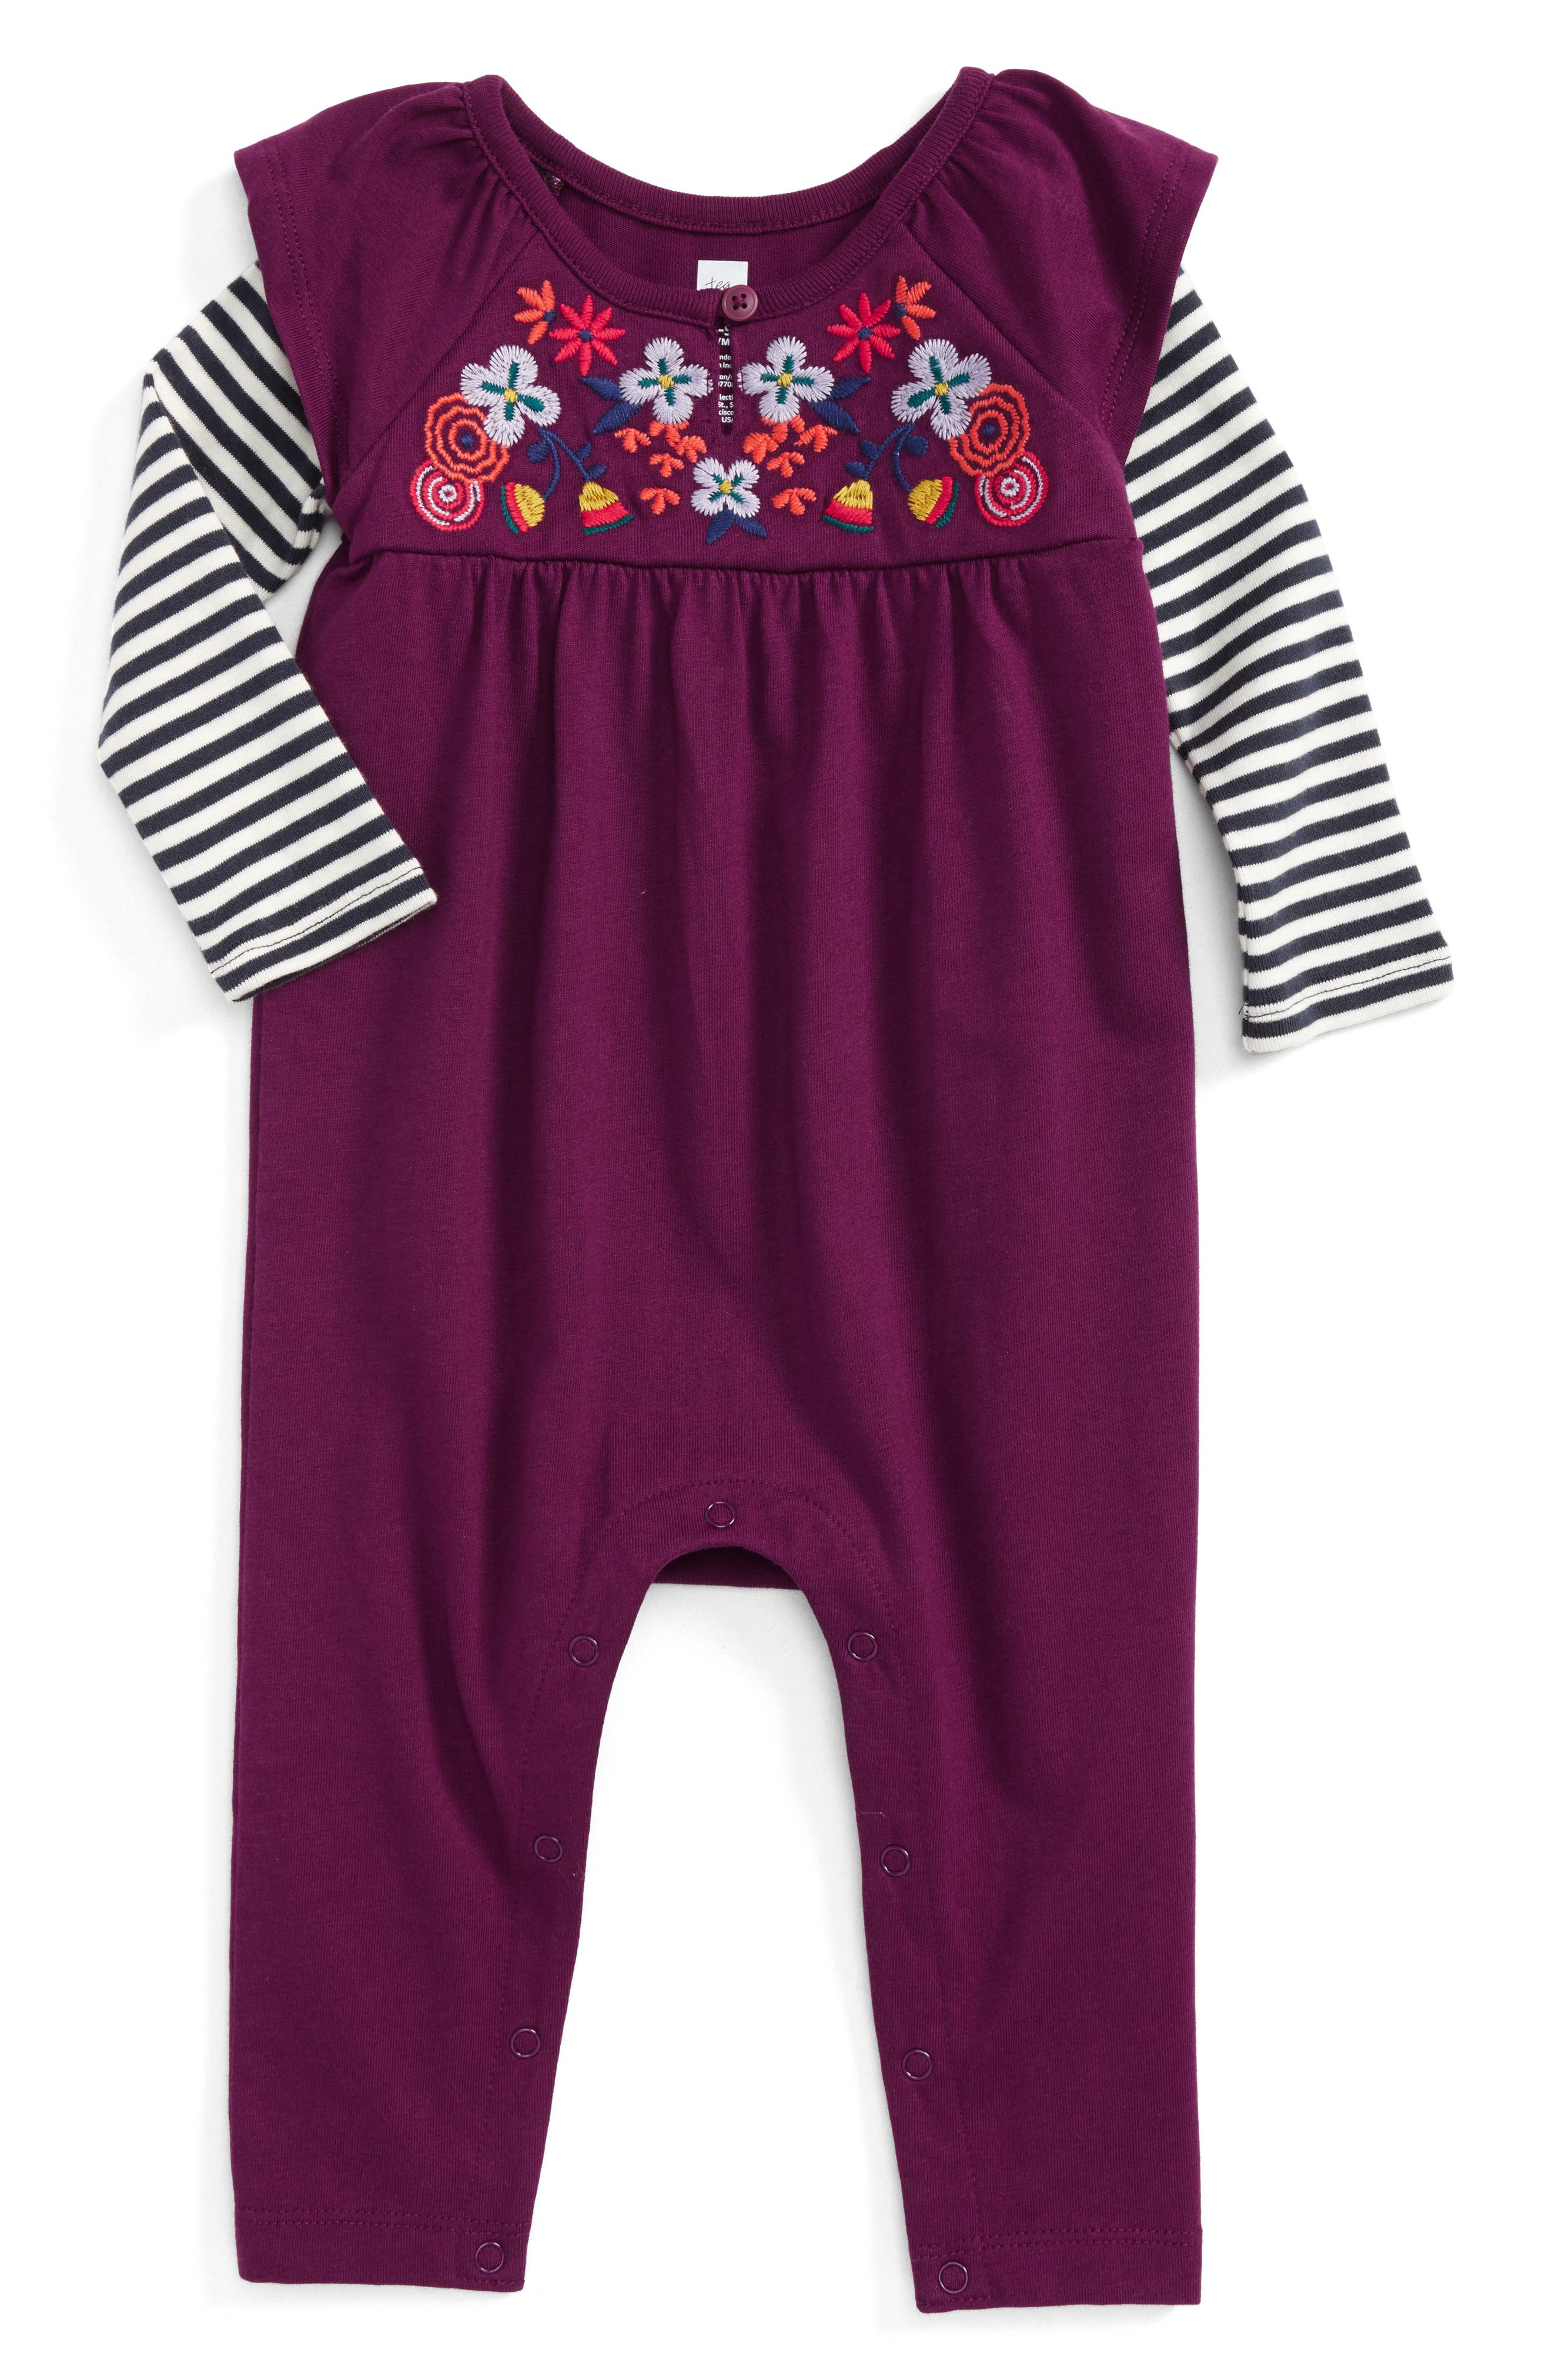 Alternate Image 1 Selected - Tea Collection Willow Embroidered Romper (Baby Girls)